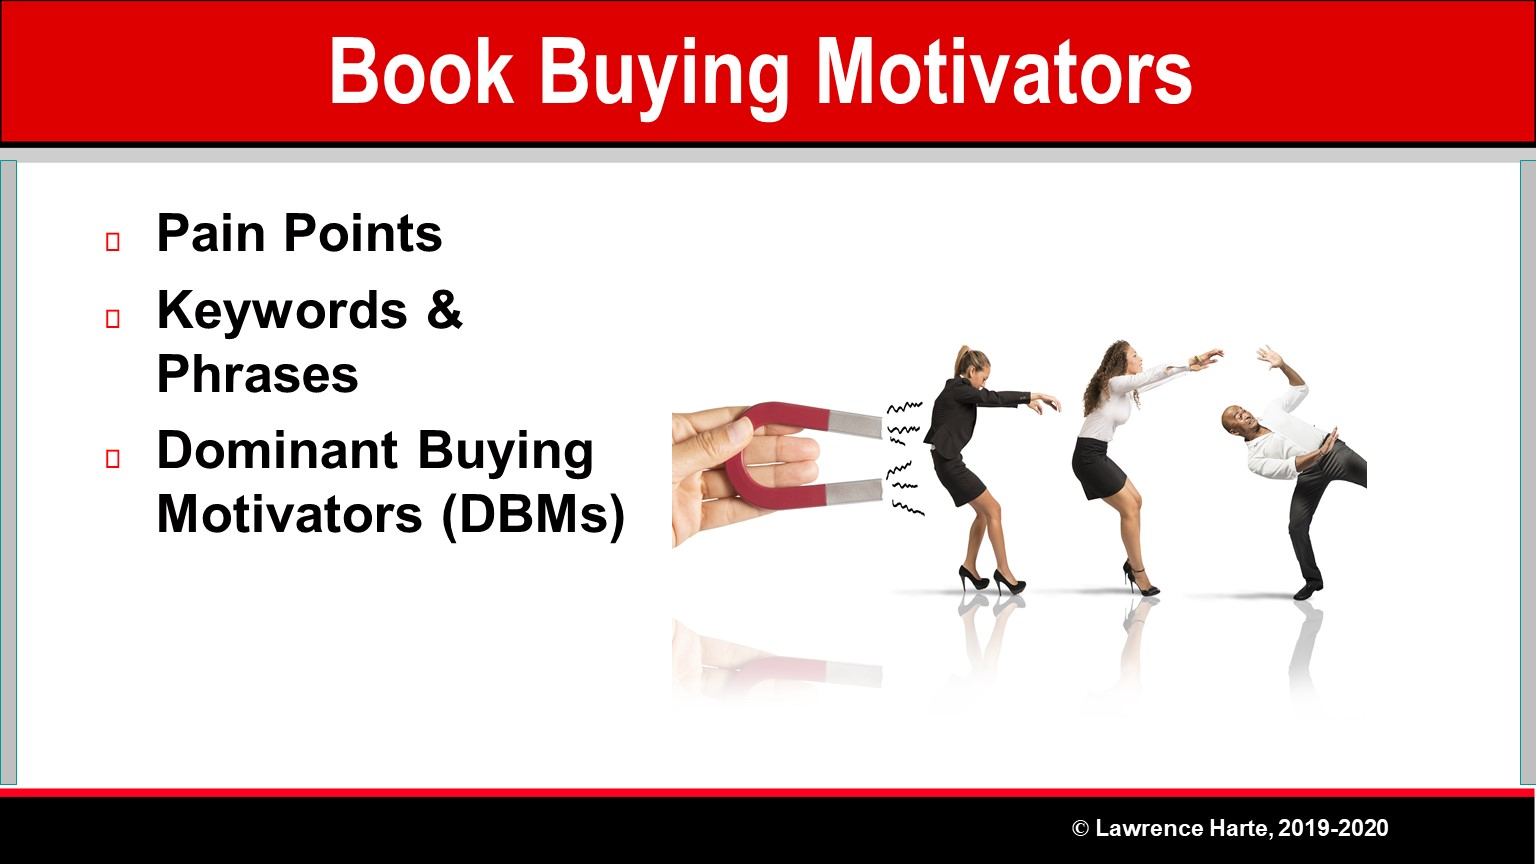 Book Pre-Launch Marketing Buying Motivators